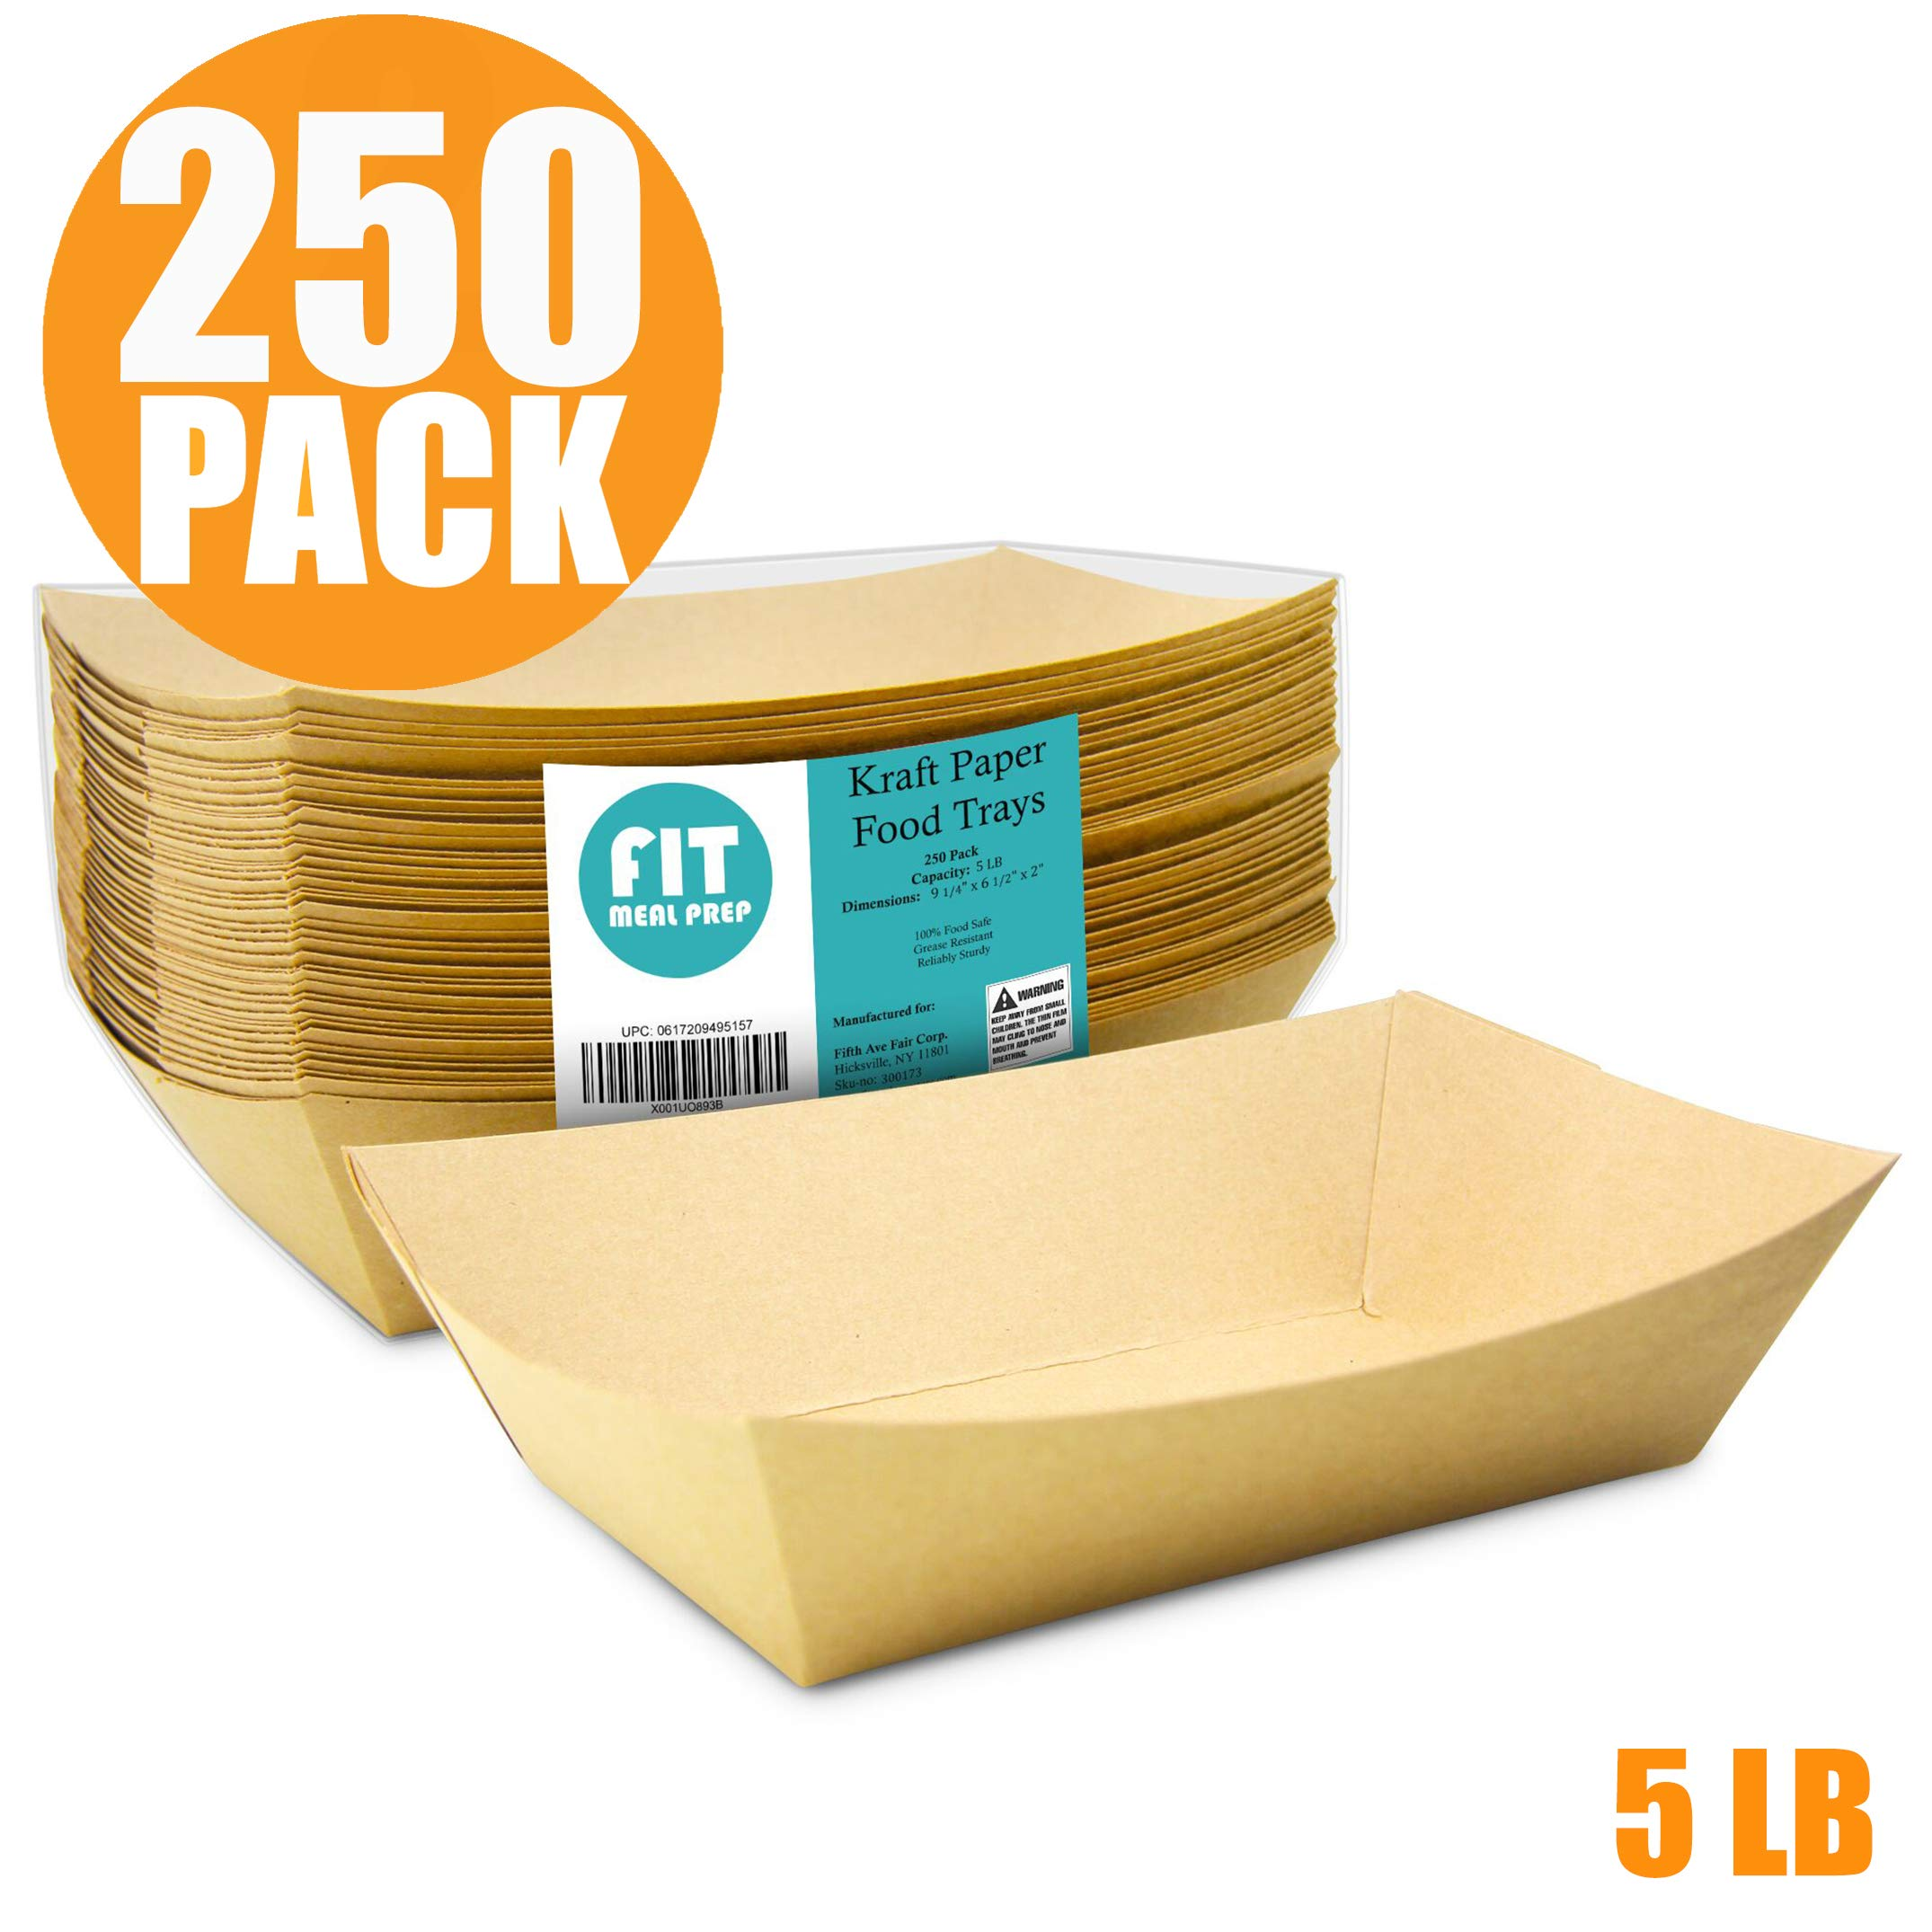 [250 Pack] 5 lb Heavy Duty Disposable Kraft Brown Paper Food Trays Grease Resistant Fast Food Paperboard Boat Basket for Parties Fairs Picnics Carnivals, Holds Tacos Nachos Fries Hot Corn Dogs by Fit Meal Prep (Image #2)